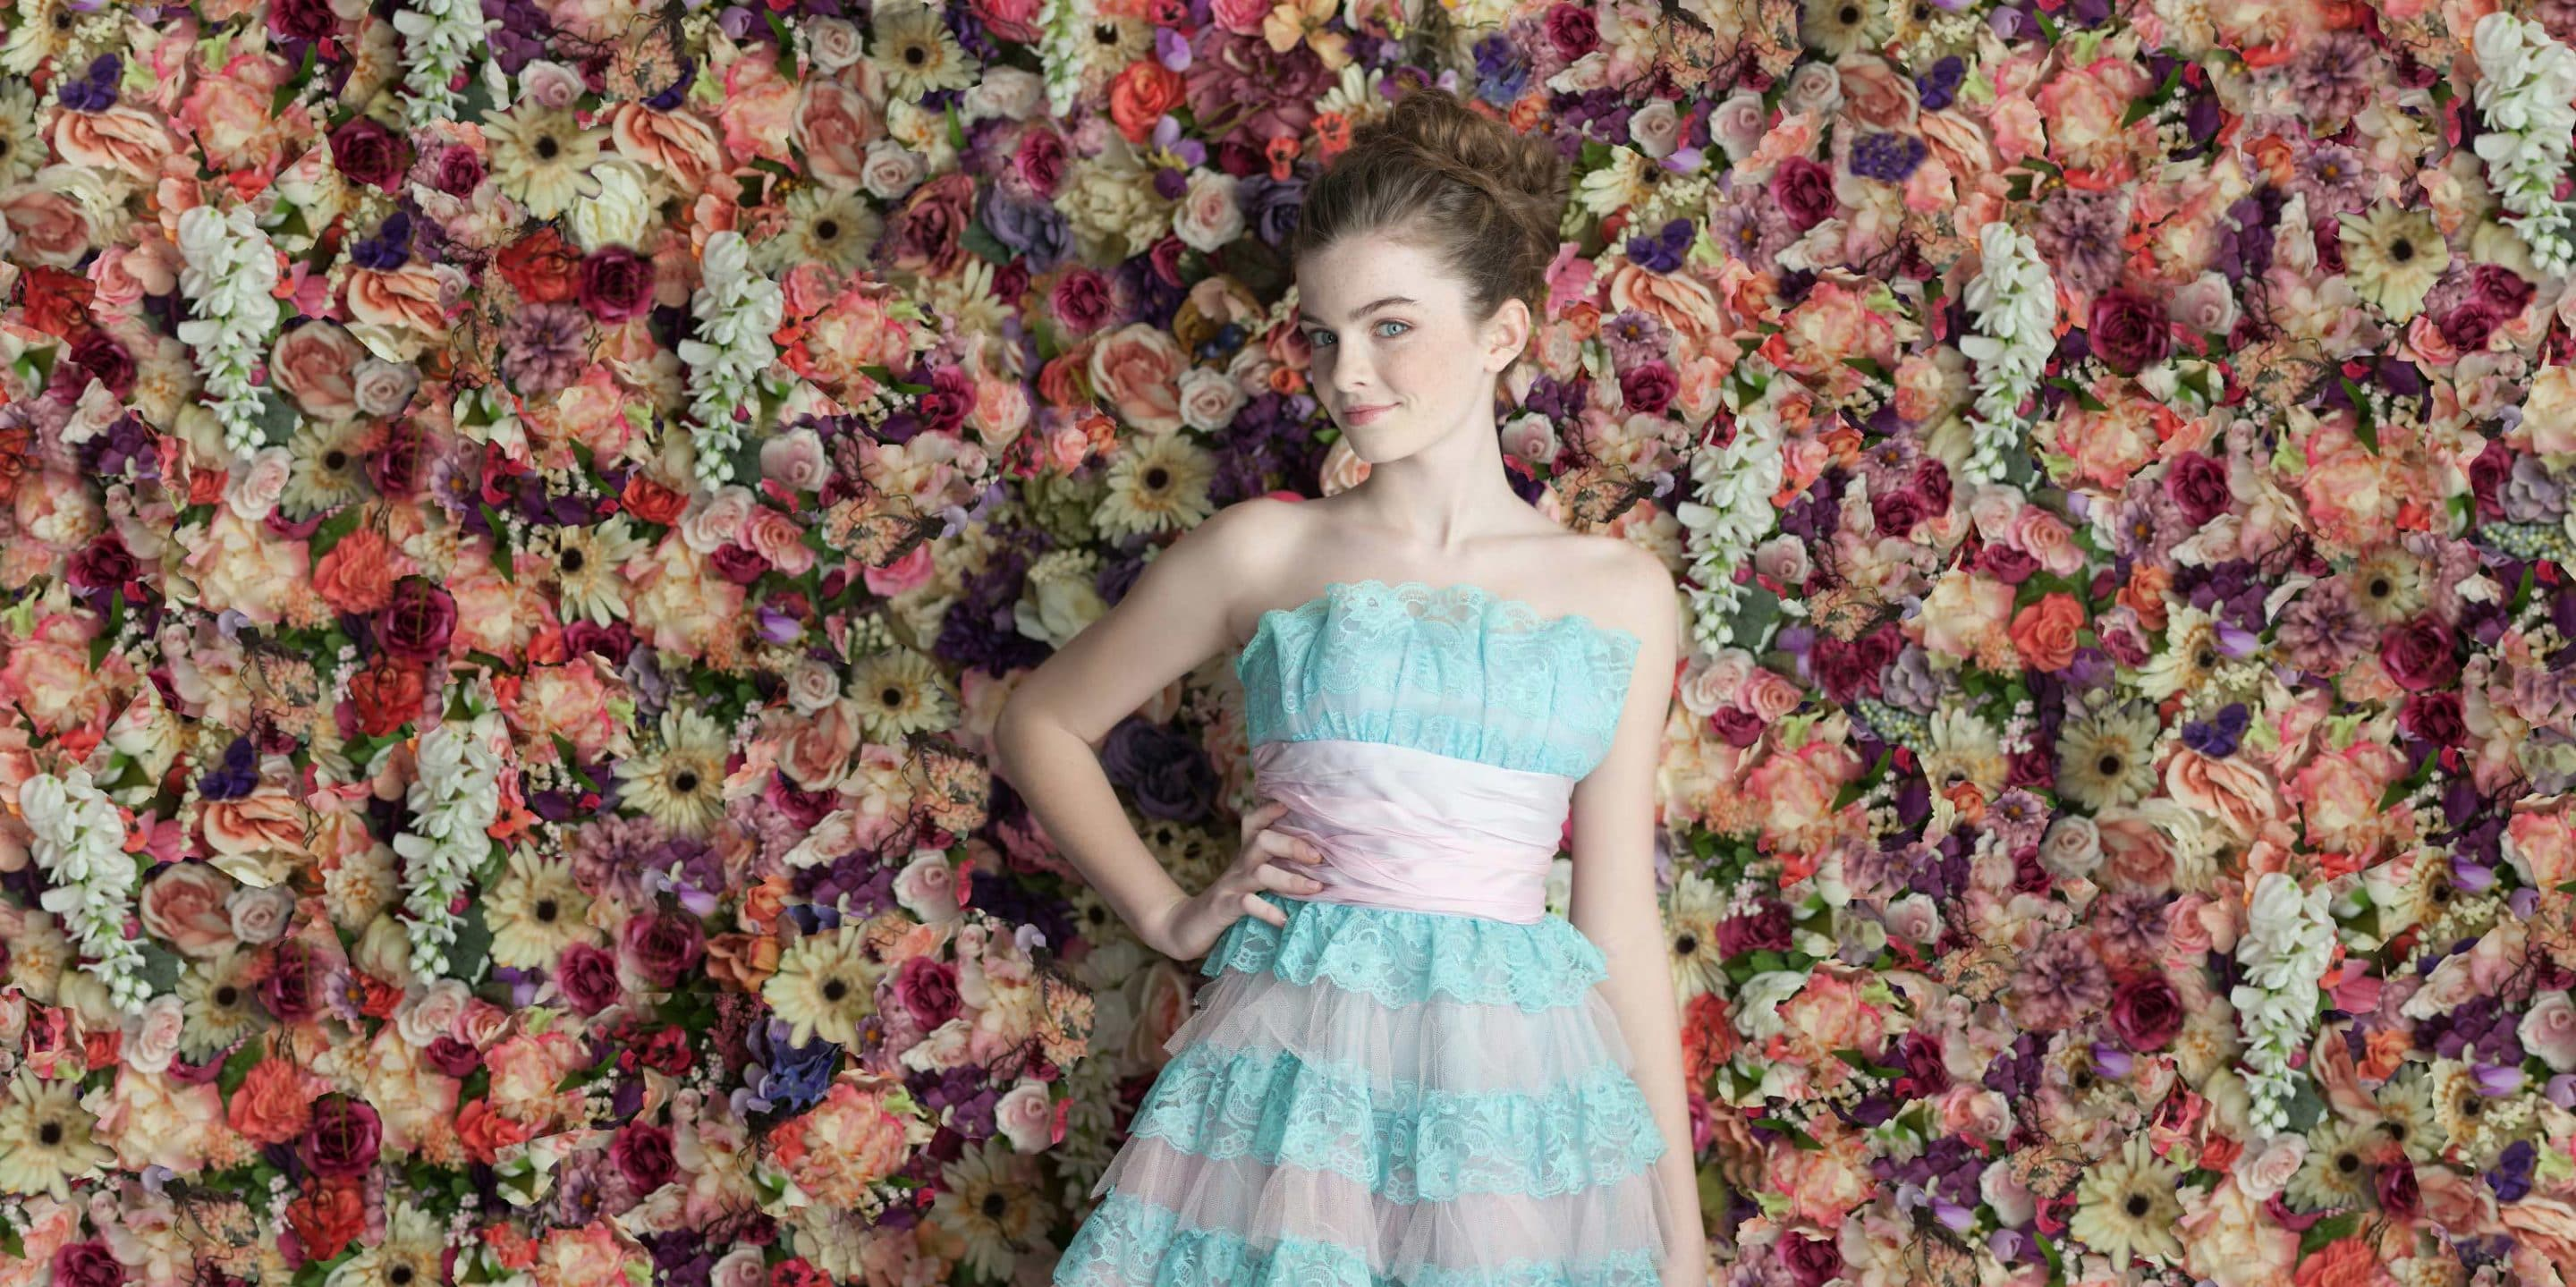 Senior portrait in blue dress with flowers in background